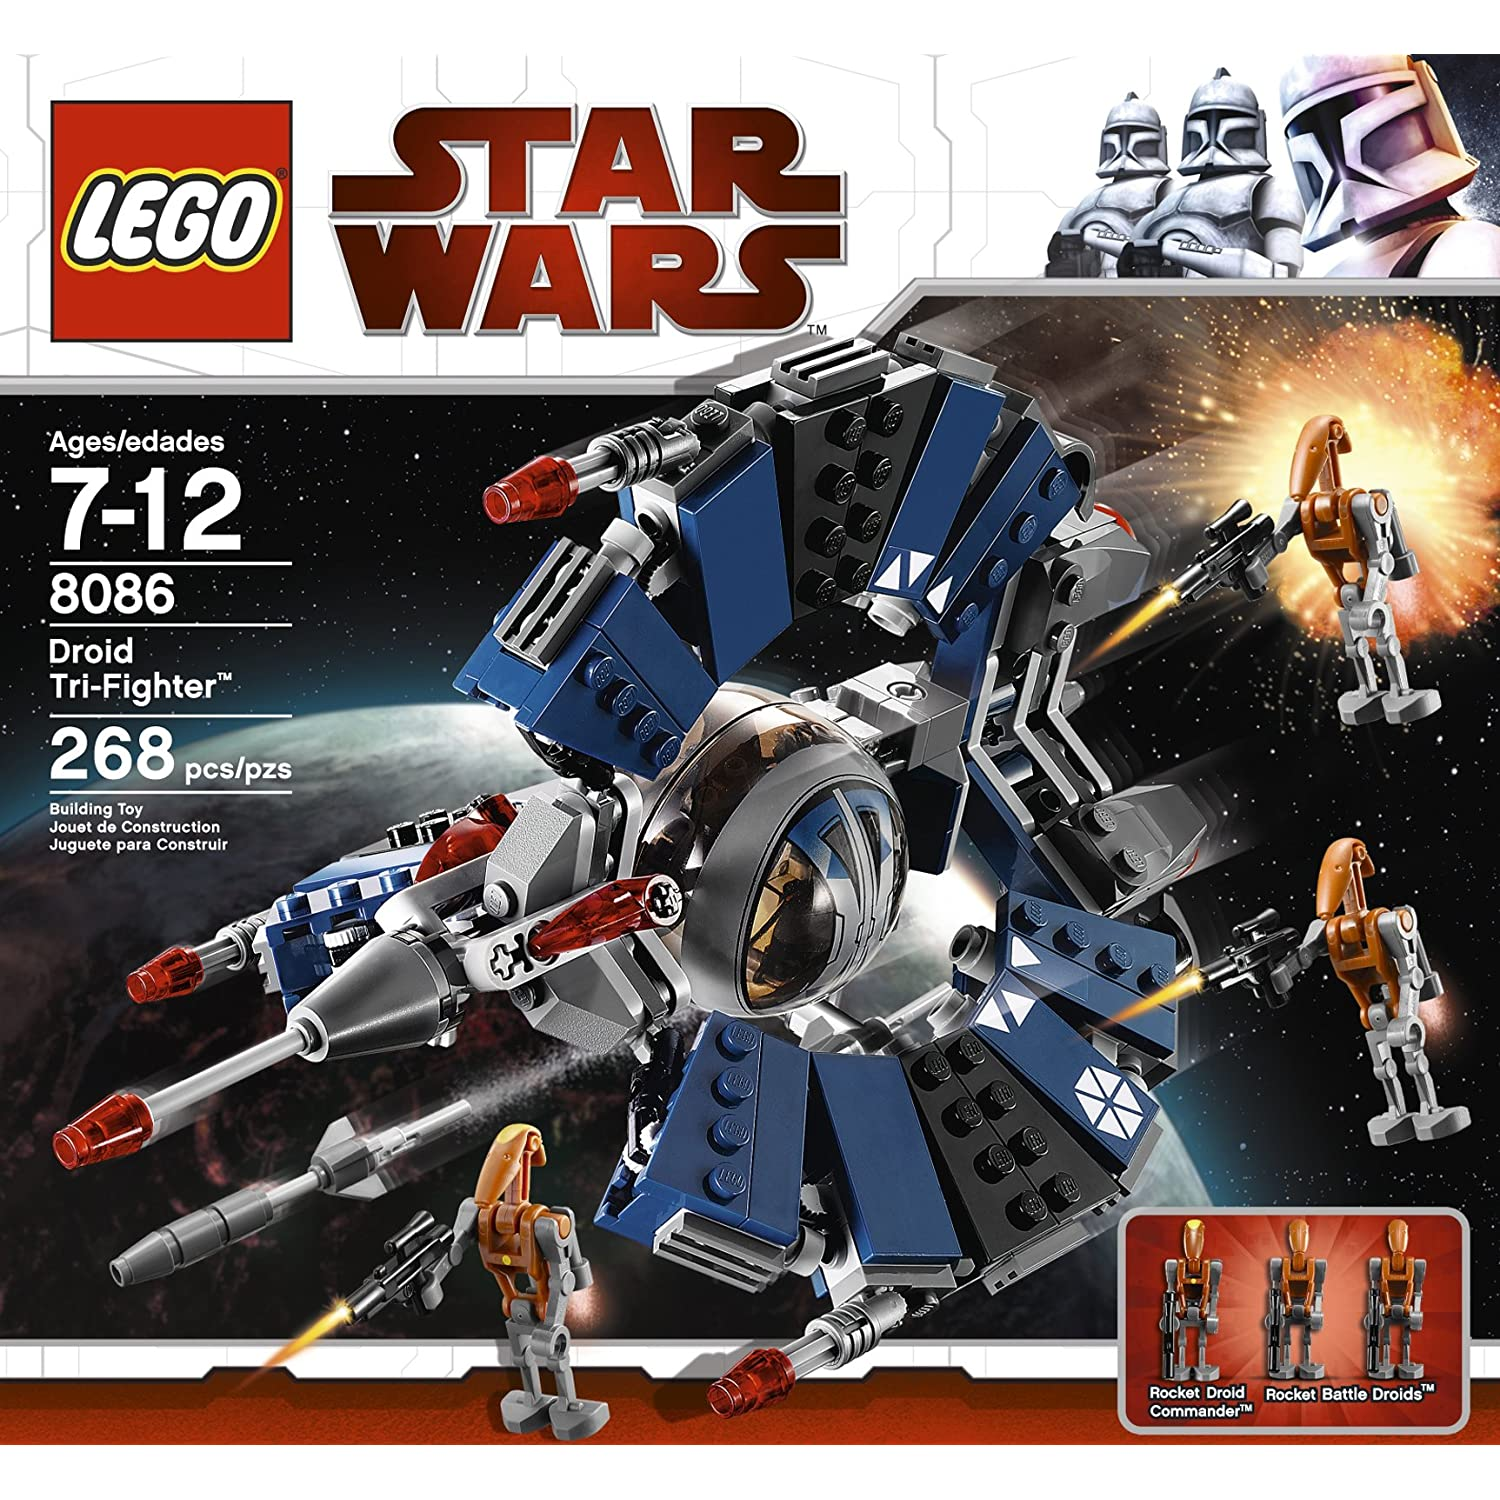 LEGO Star Wars Trifighter Droid (8086) - 1